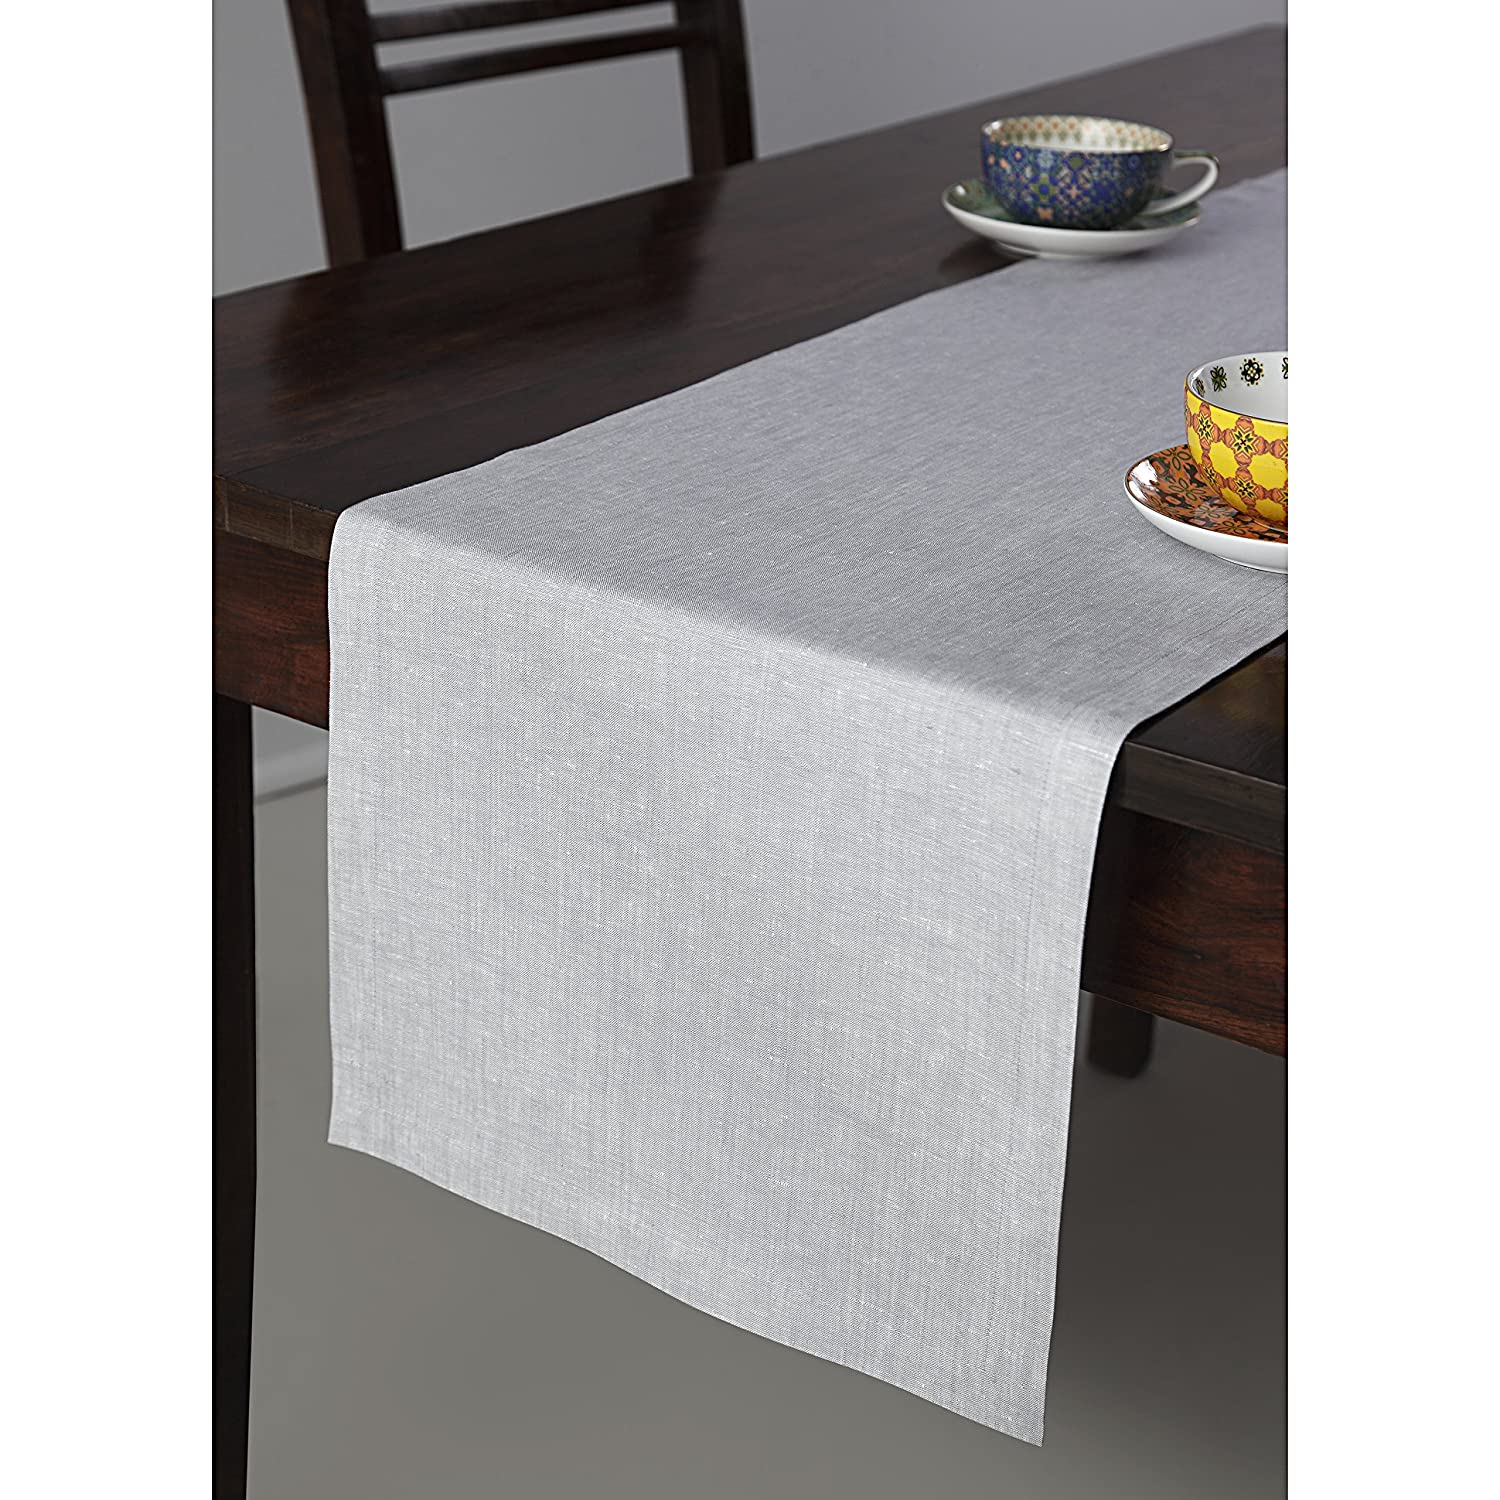 Handcrafted Pure Natural Linen Fabric Table Runner - ChristmasTablescapeDecor.com